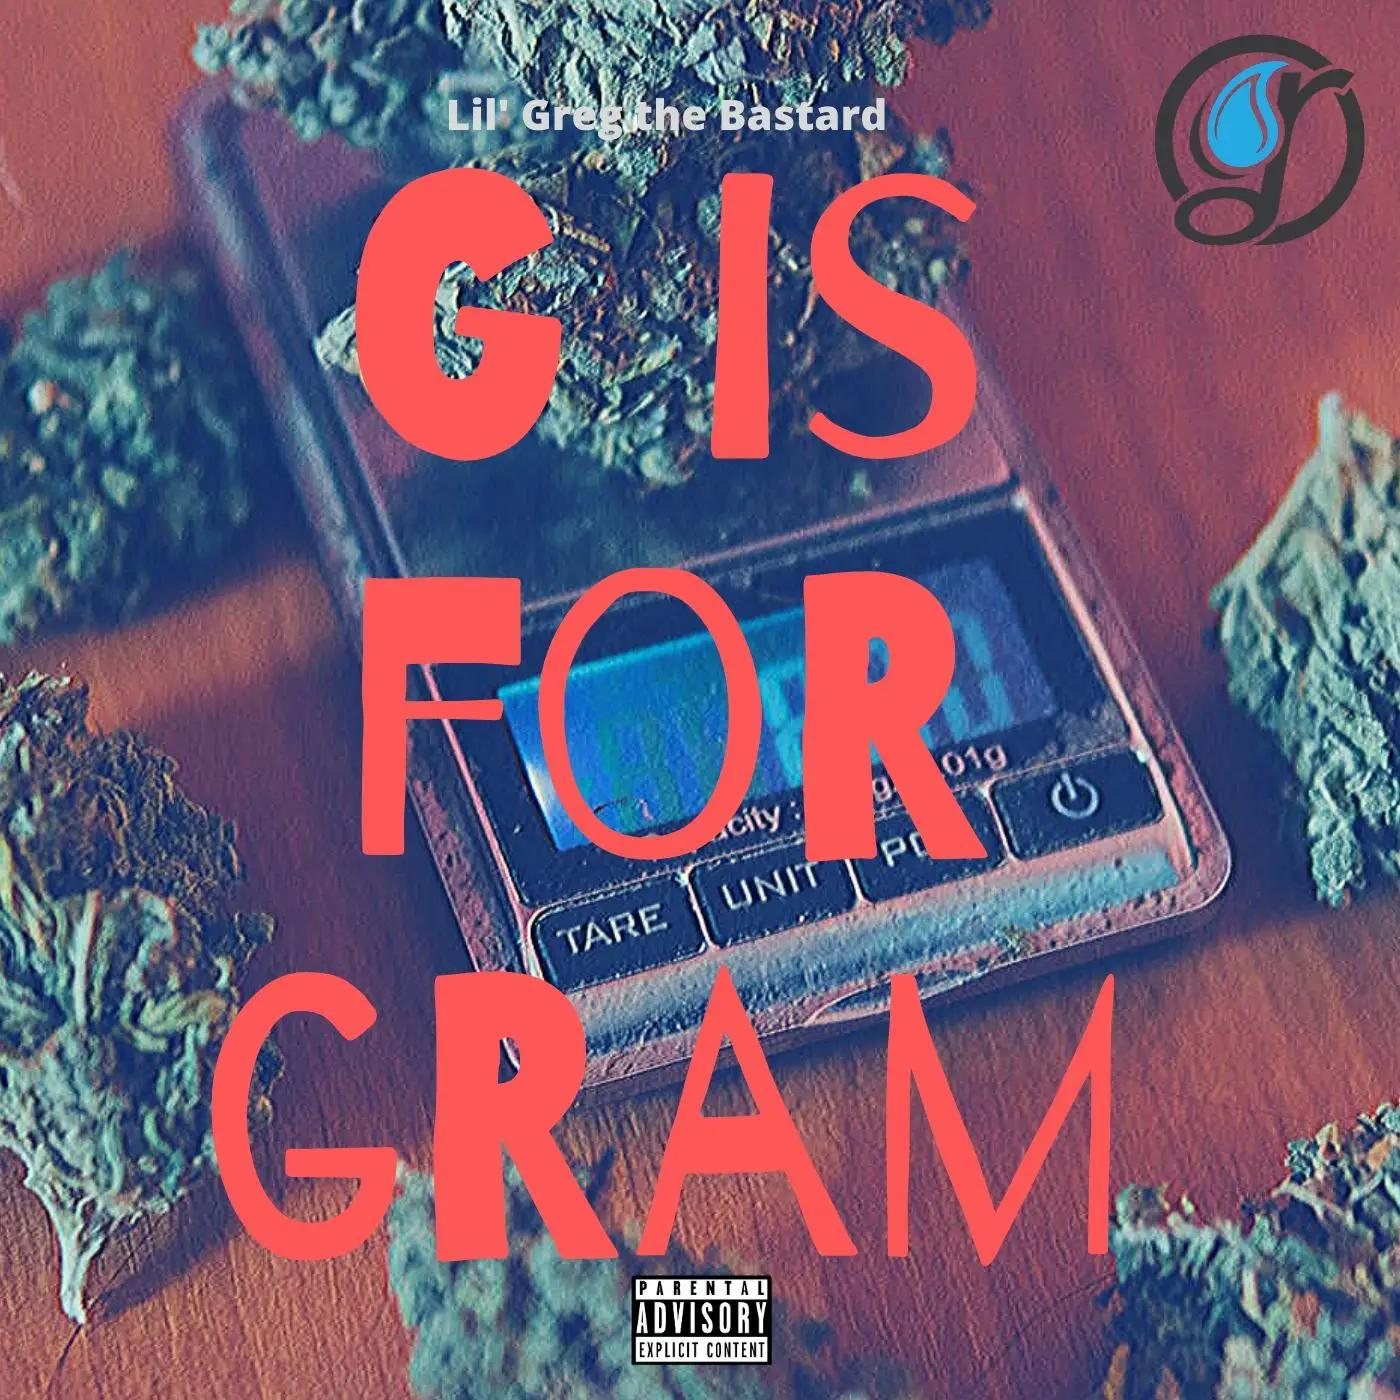 Your Search For Substance Stops Here With Lil' Greg the Bastard's Latest Visual In Two And A Hall Years Brings Back The Nostalgia Of Rap With Substance While Simultaneously Not Sounded Dated